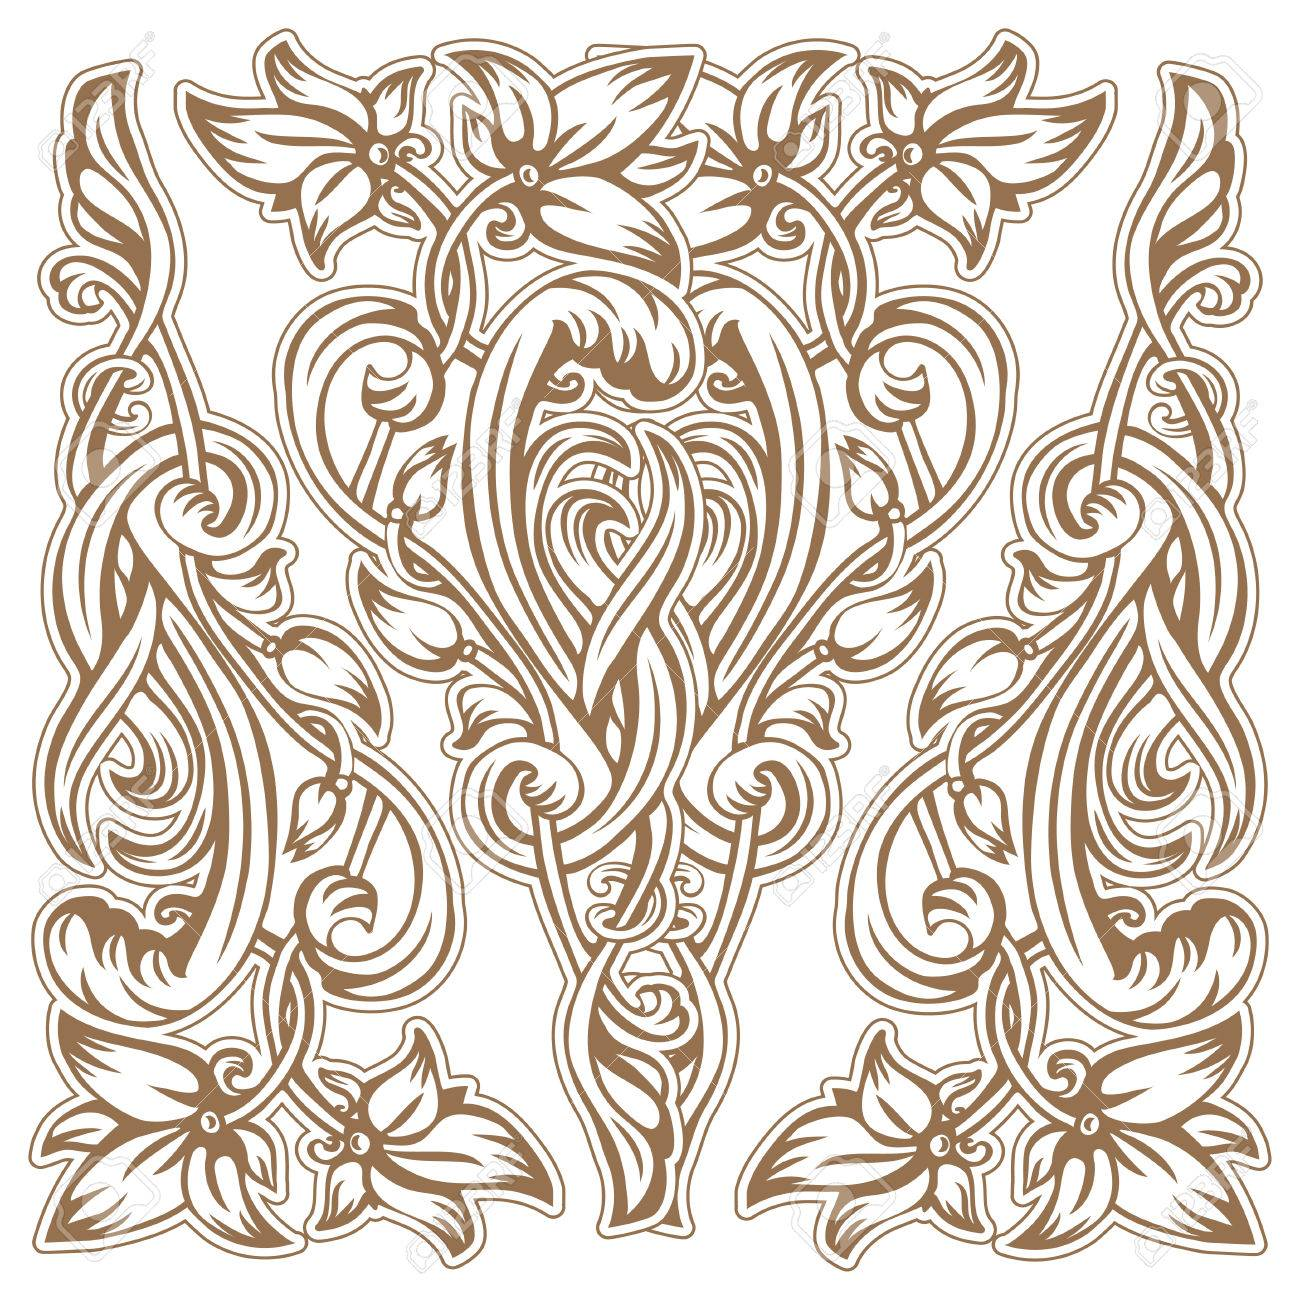 Vector vintage pattern of flowers and leaves in the Art Nouveau style - 51019978